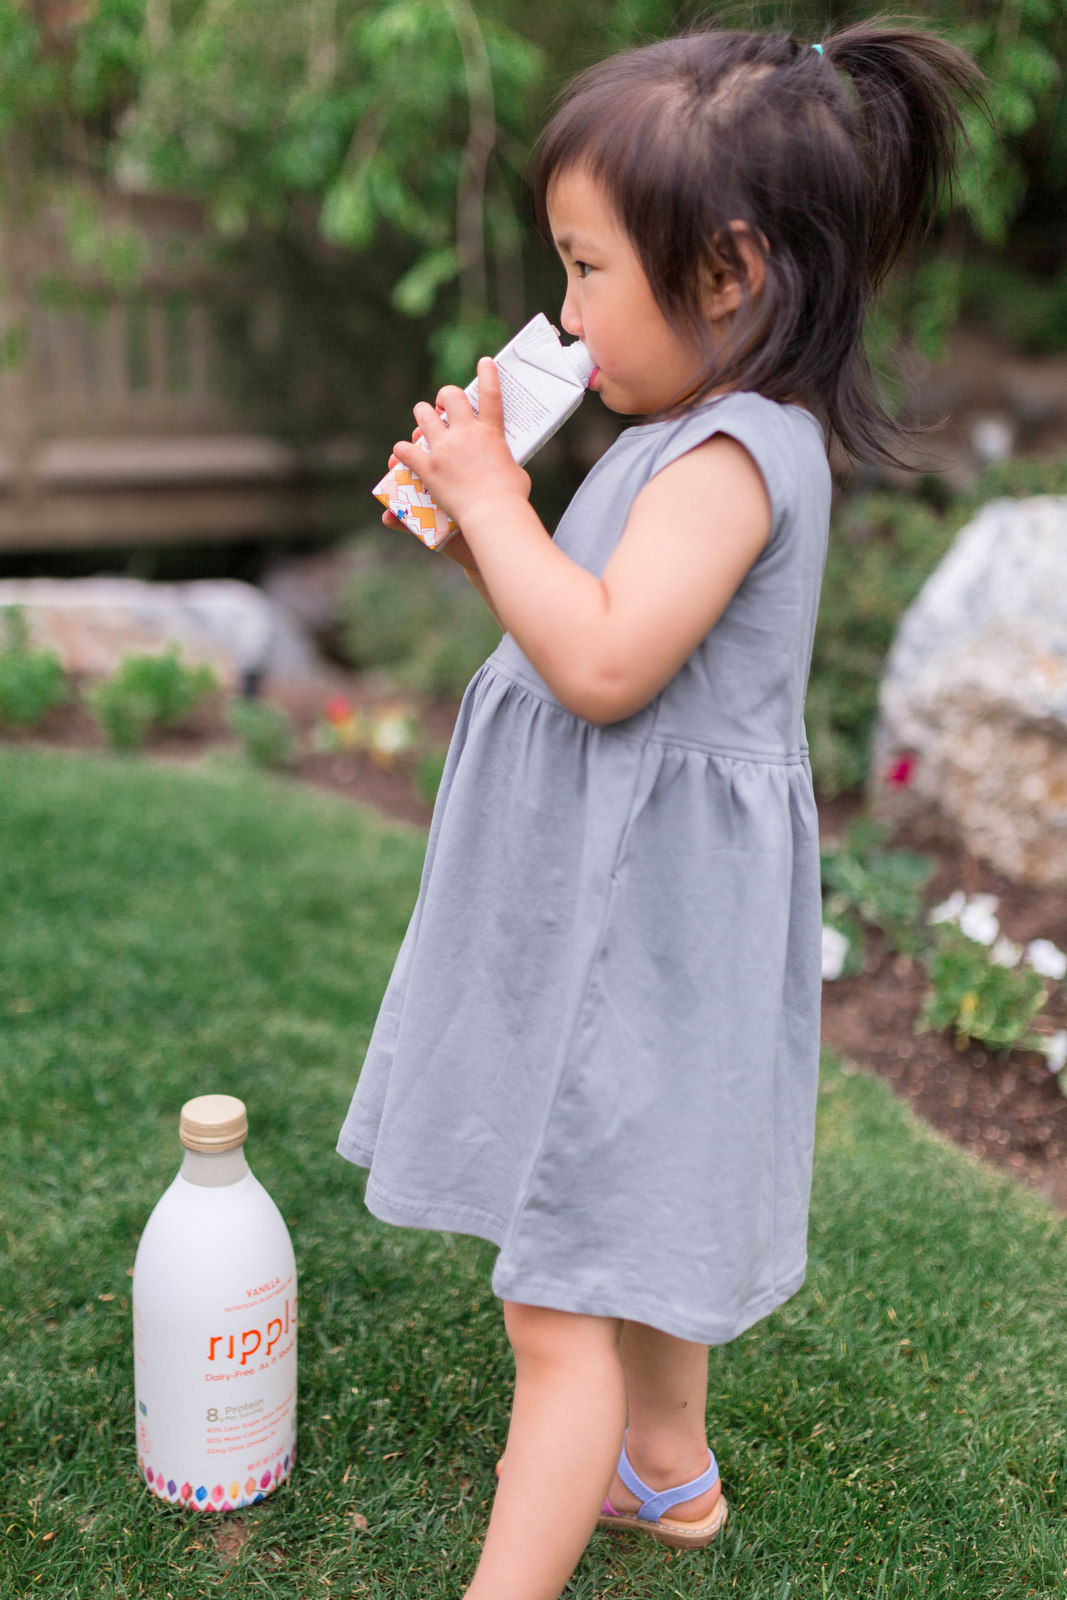 We Tried Pea Milk - Here's Our Review by popular blogger Sandy A La Mode